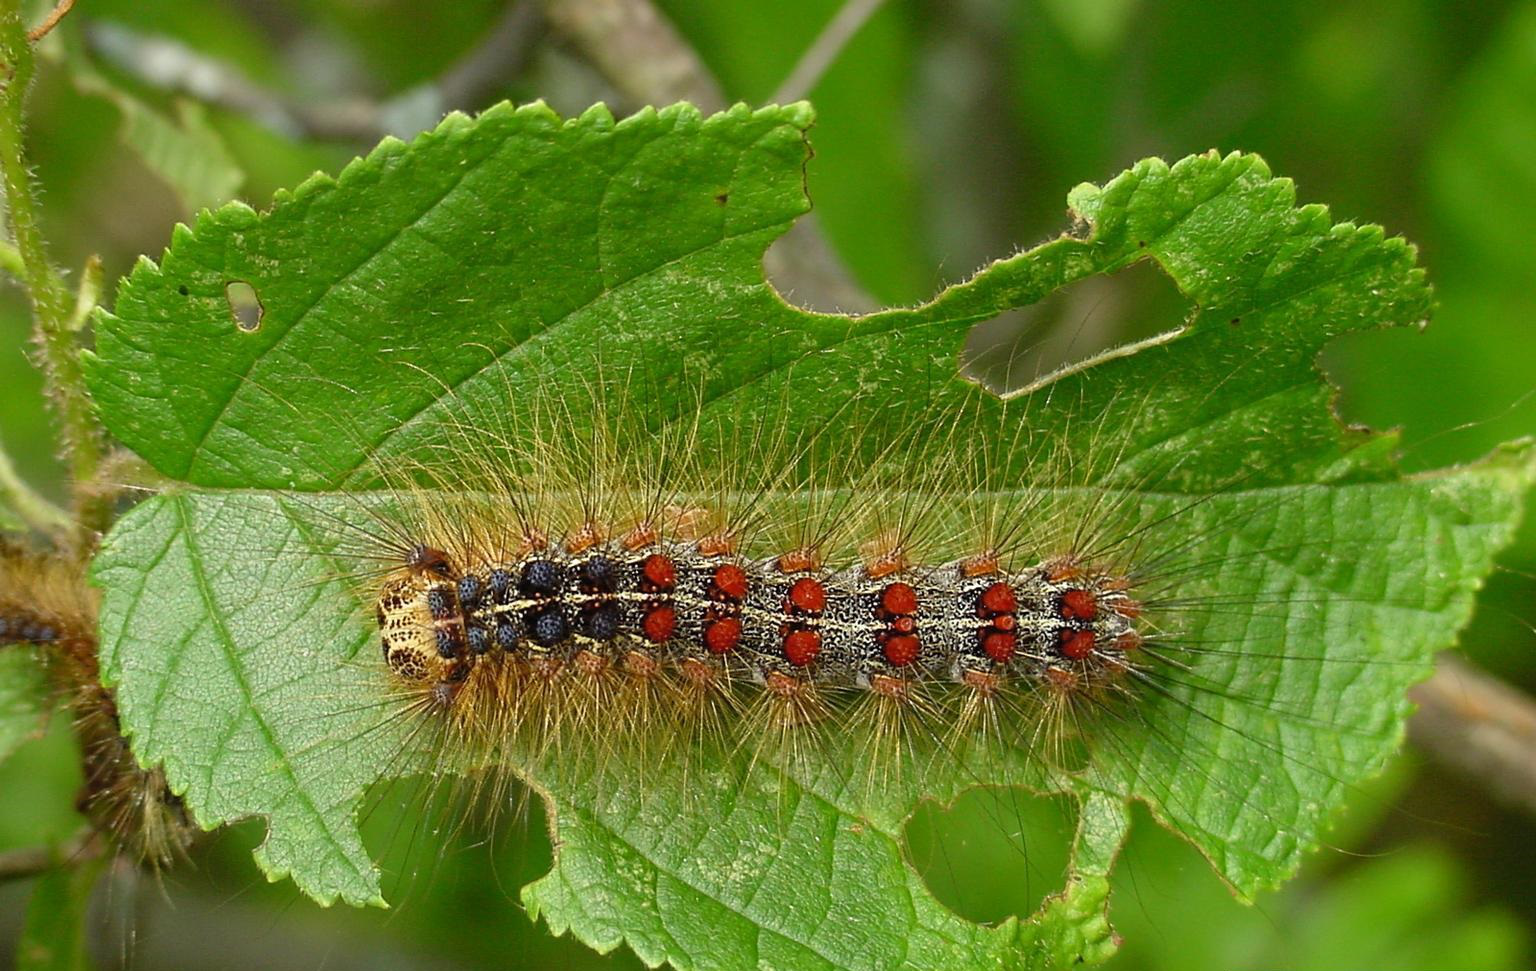 Gypsy moth infestation has yet to disappear in New England